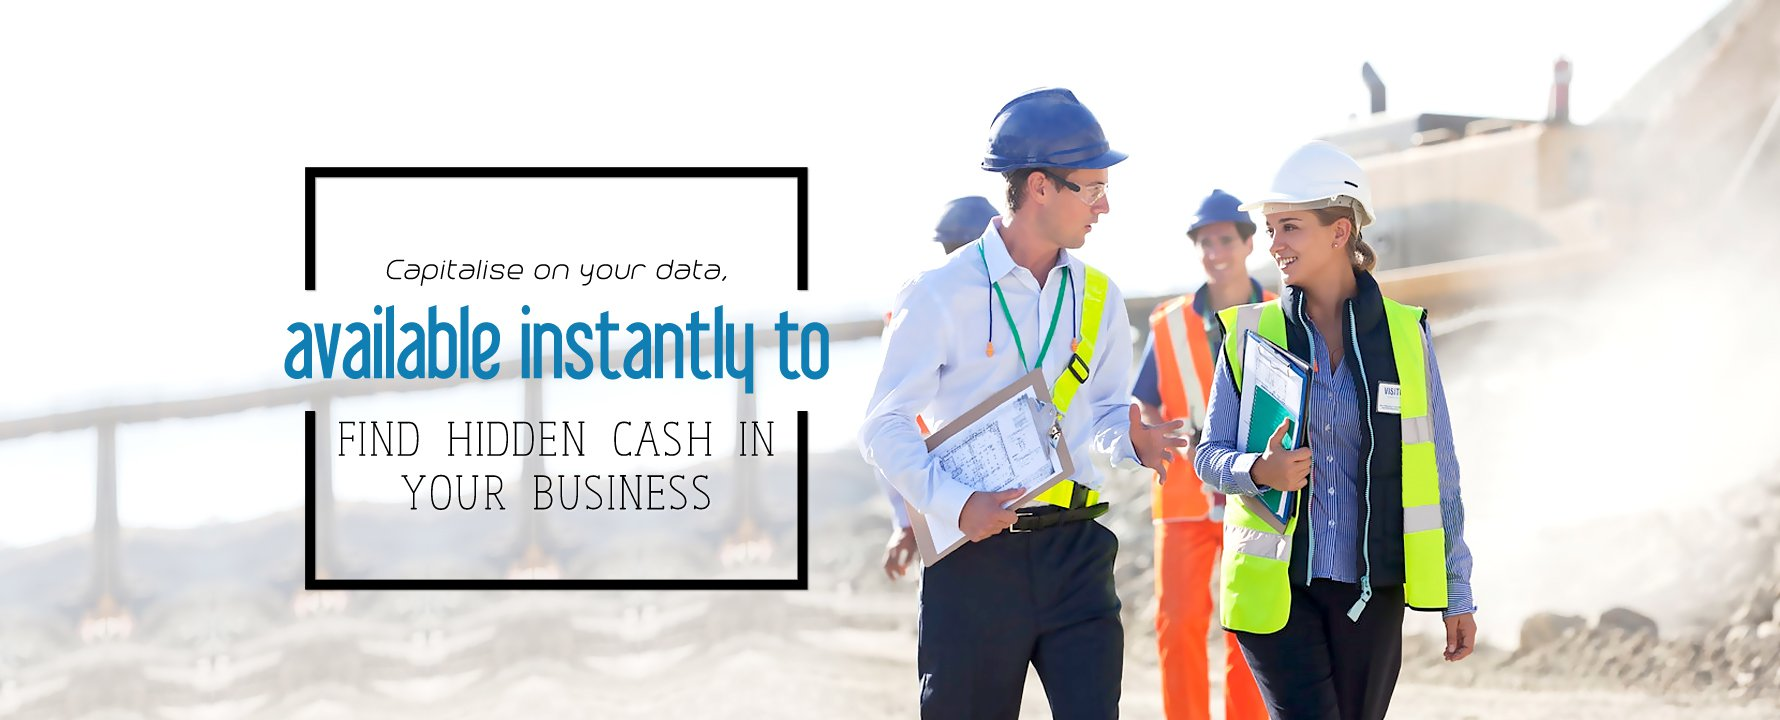 Capitalise on your data available instantly to find hidden cash in your business